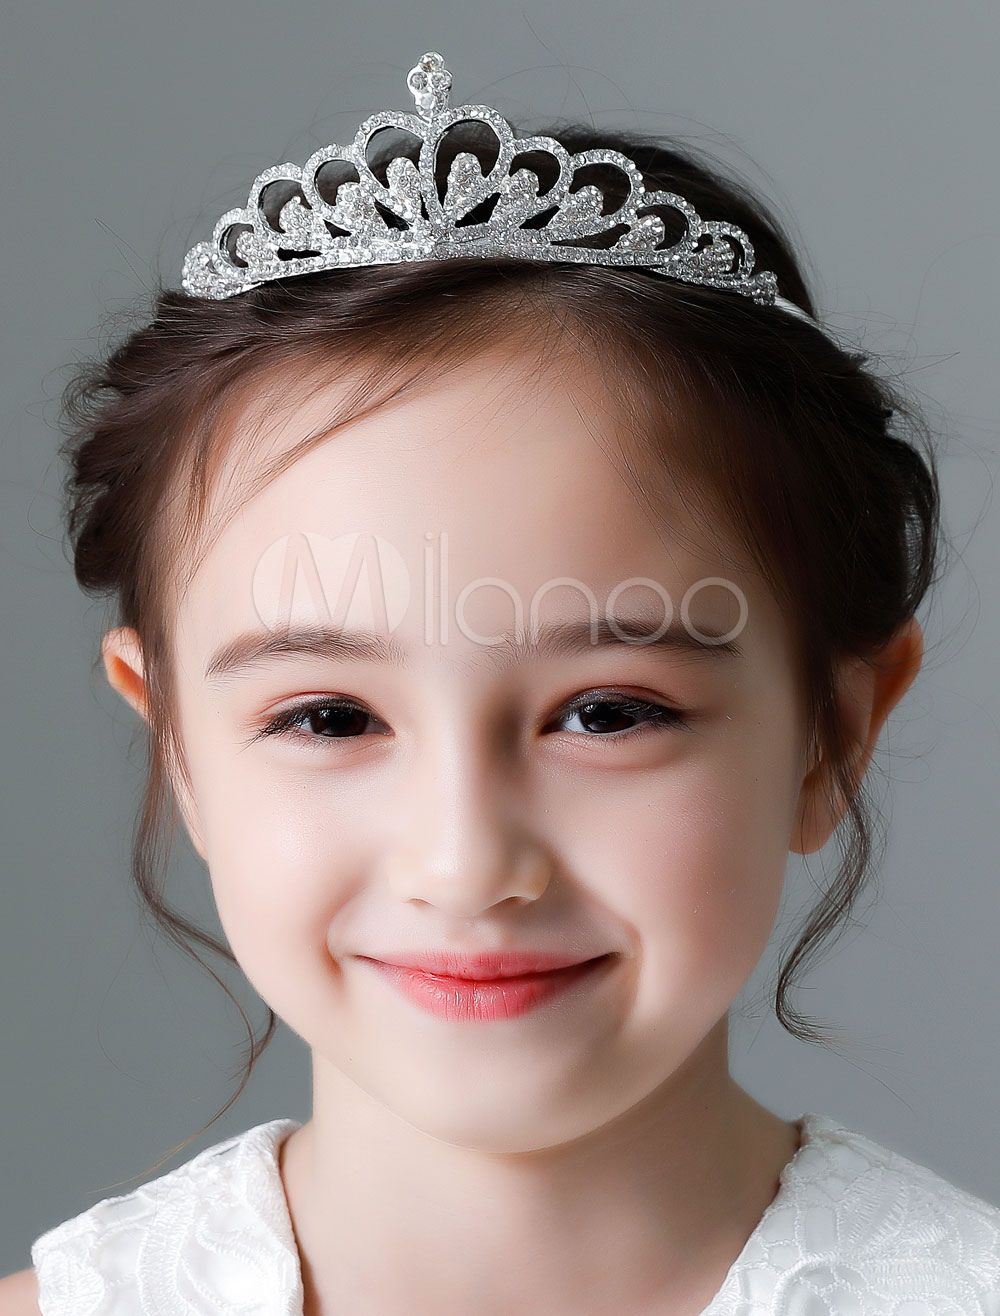 Clothes, Shoes & Accessories Girls Kid Children Baby Princess Party Crystal Bling Crown Tiara Hair Head Band